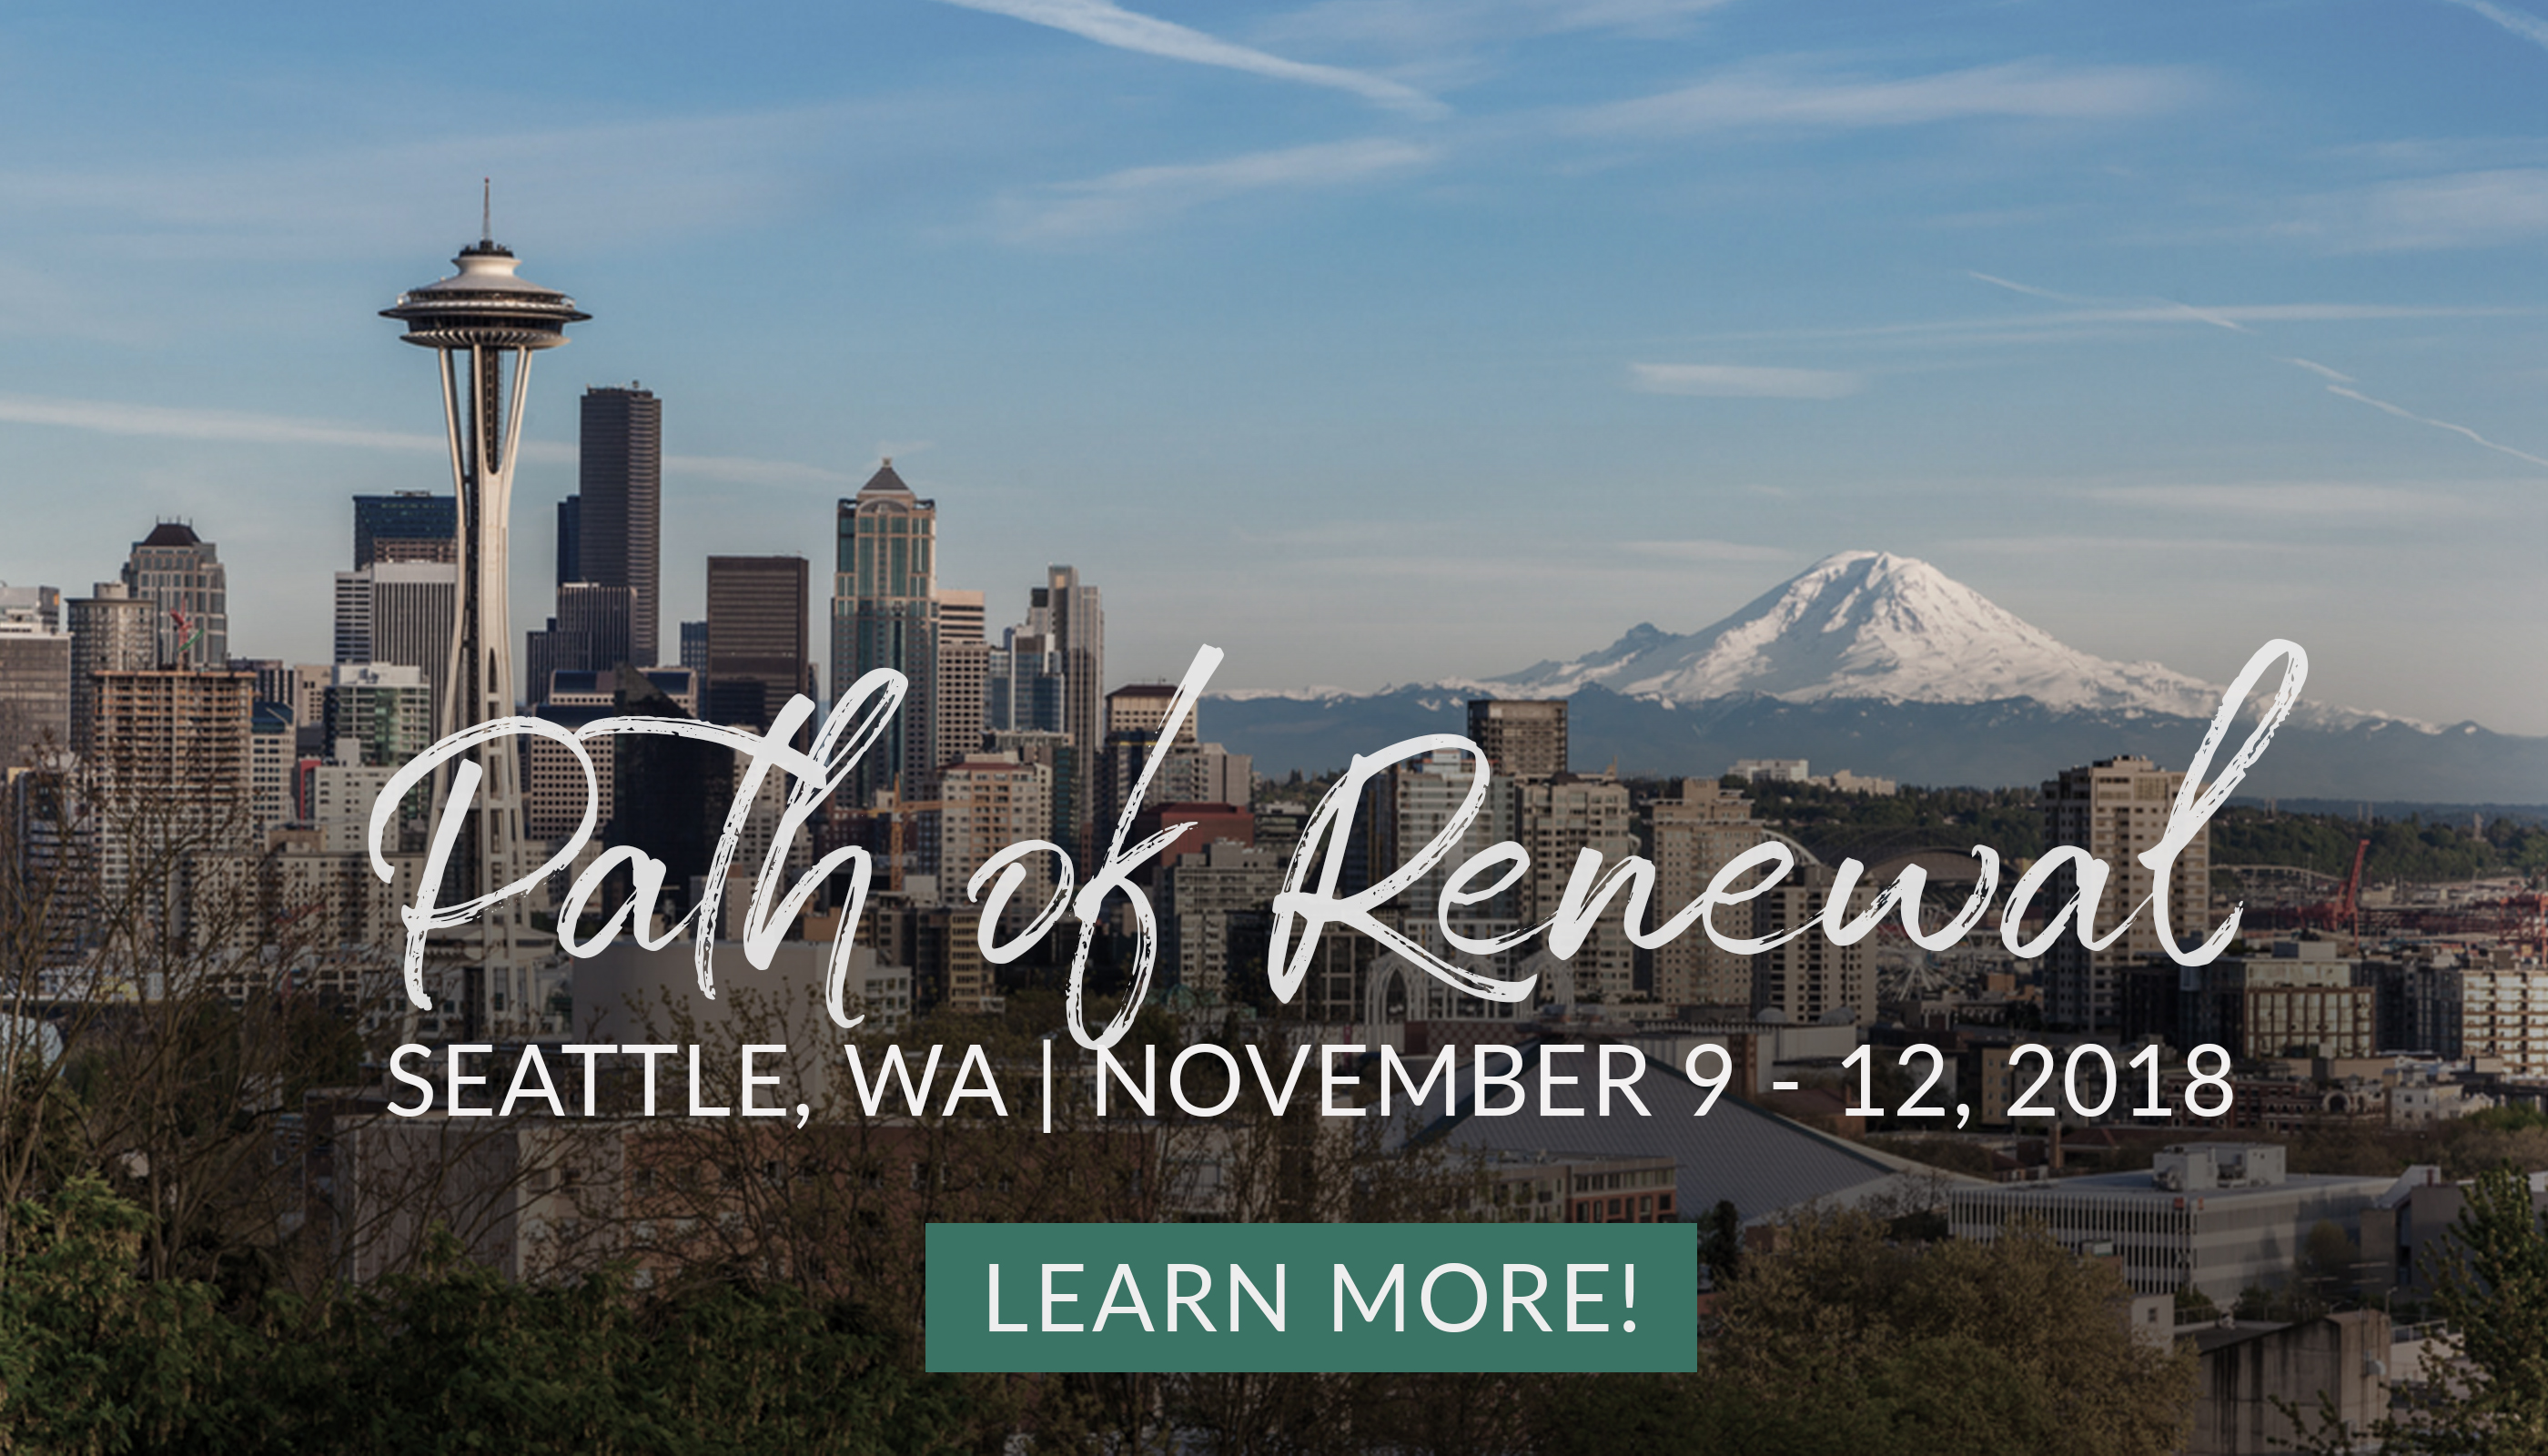 https://marriagerecoverycenter.com/wp-content/uploads/2018/09/website-side-bar-graphic-P-of-R-Seattle-Nov-2018.jpg